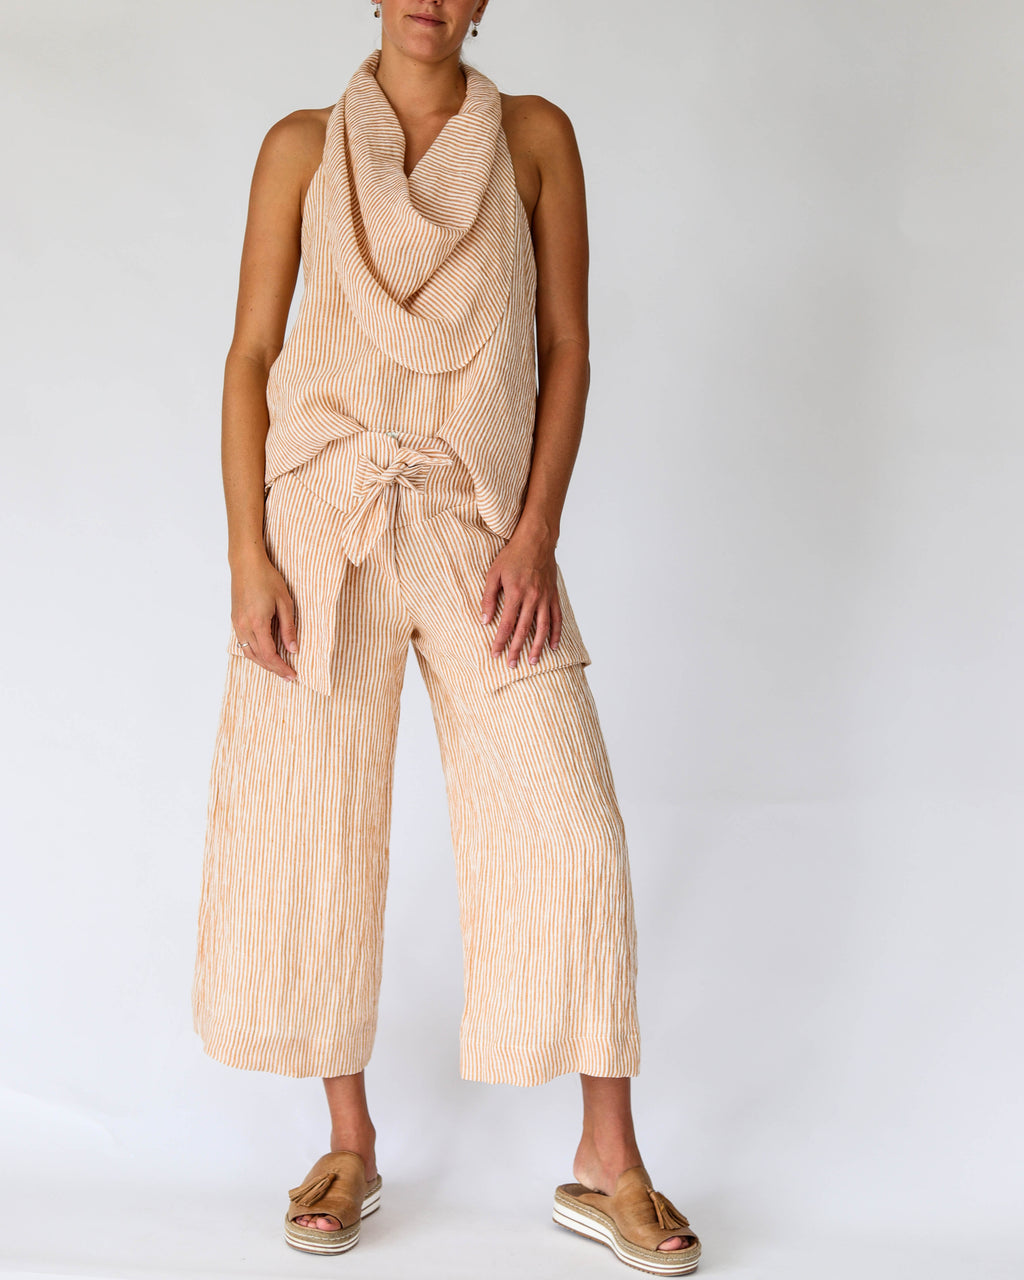 Tiff 3/4 Pant in Gold Stripe Linen